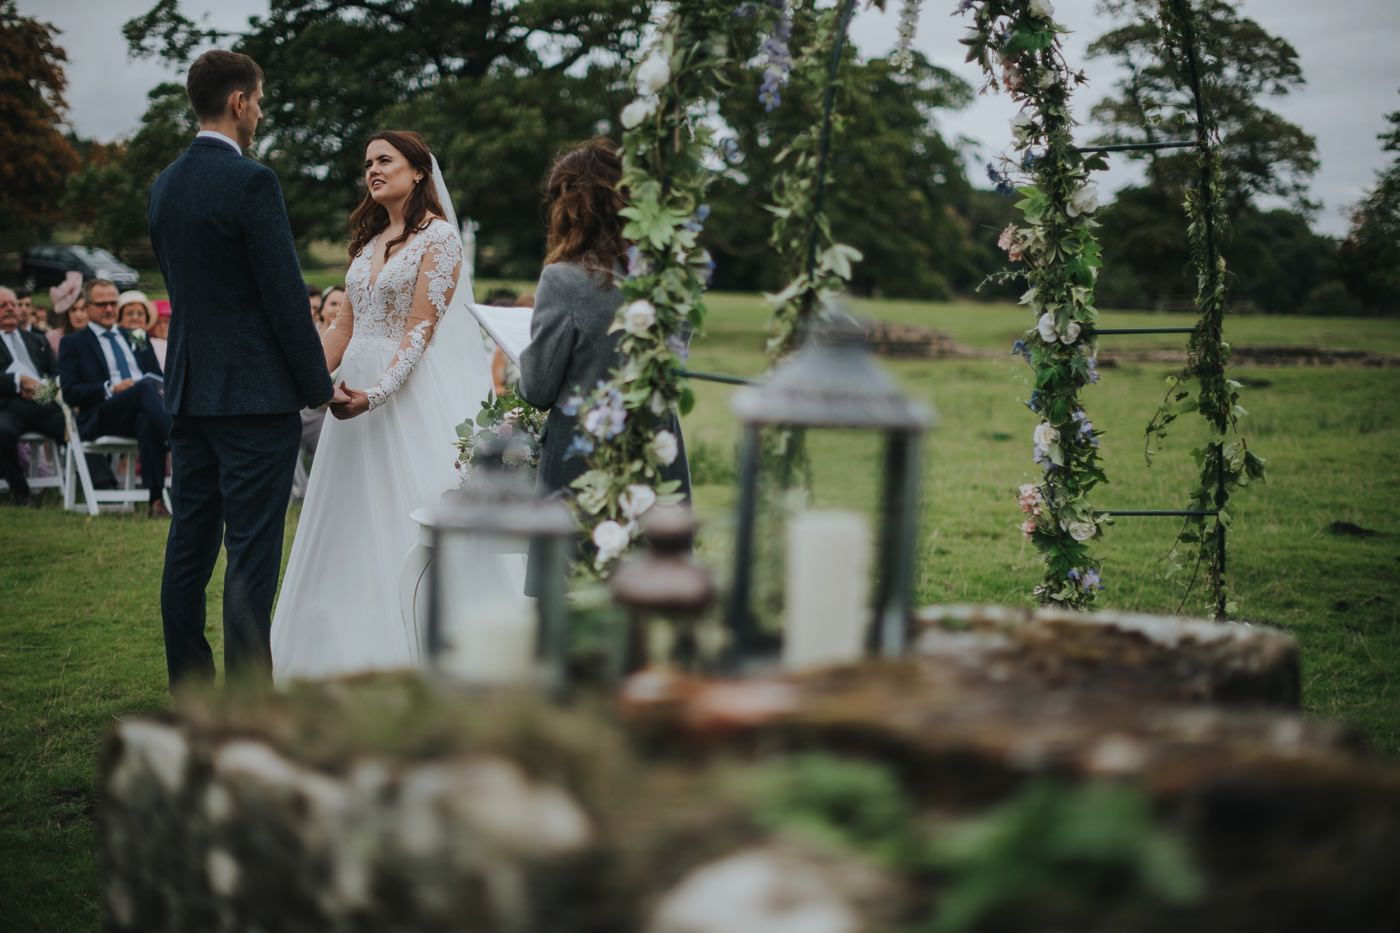 Steve & Tiffany | Bradgate Park wedding 60